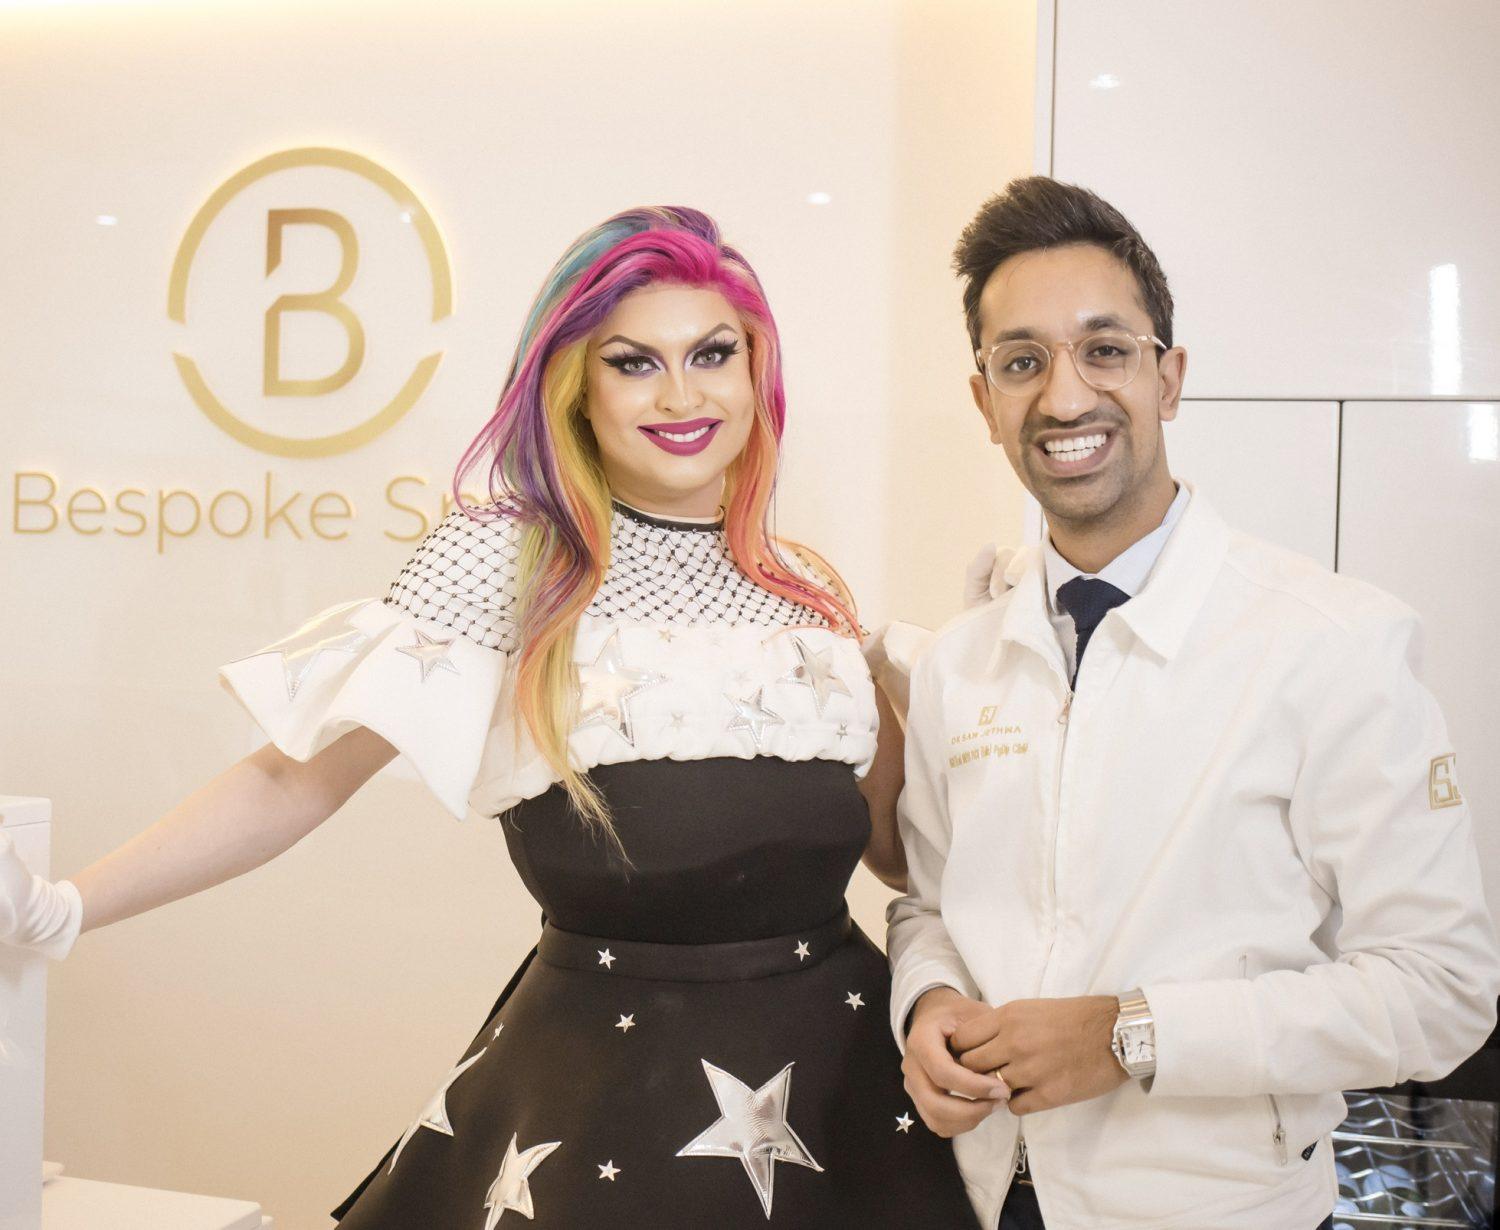 At Bespoke Smile, Marlow, we want to improve our patients' lives by giving them the smile they have always dreamed of.